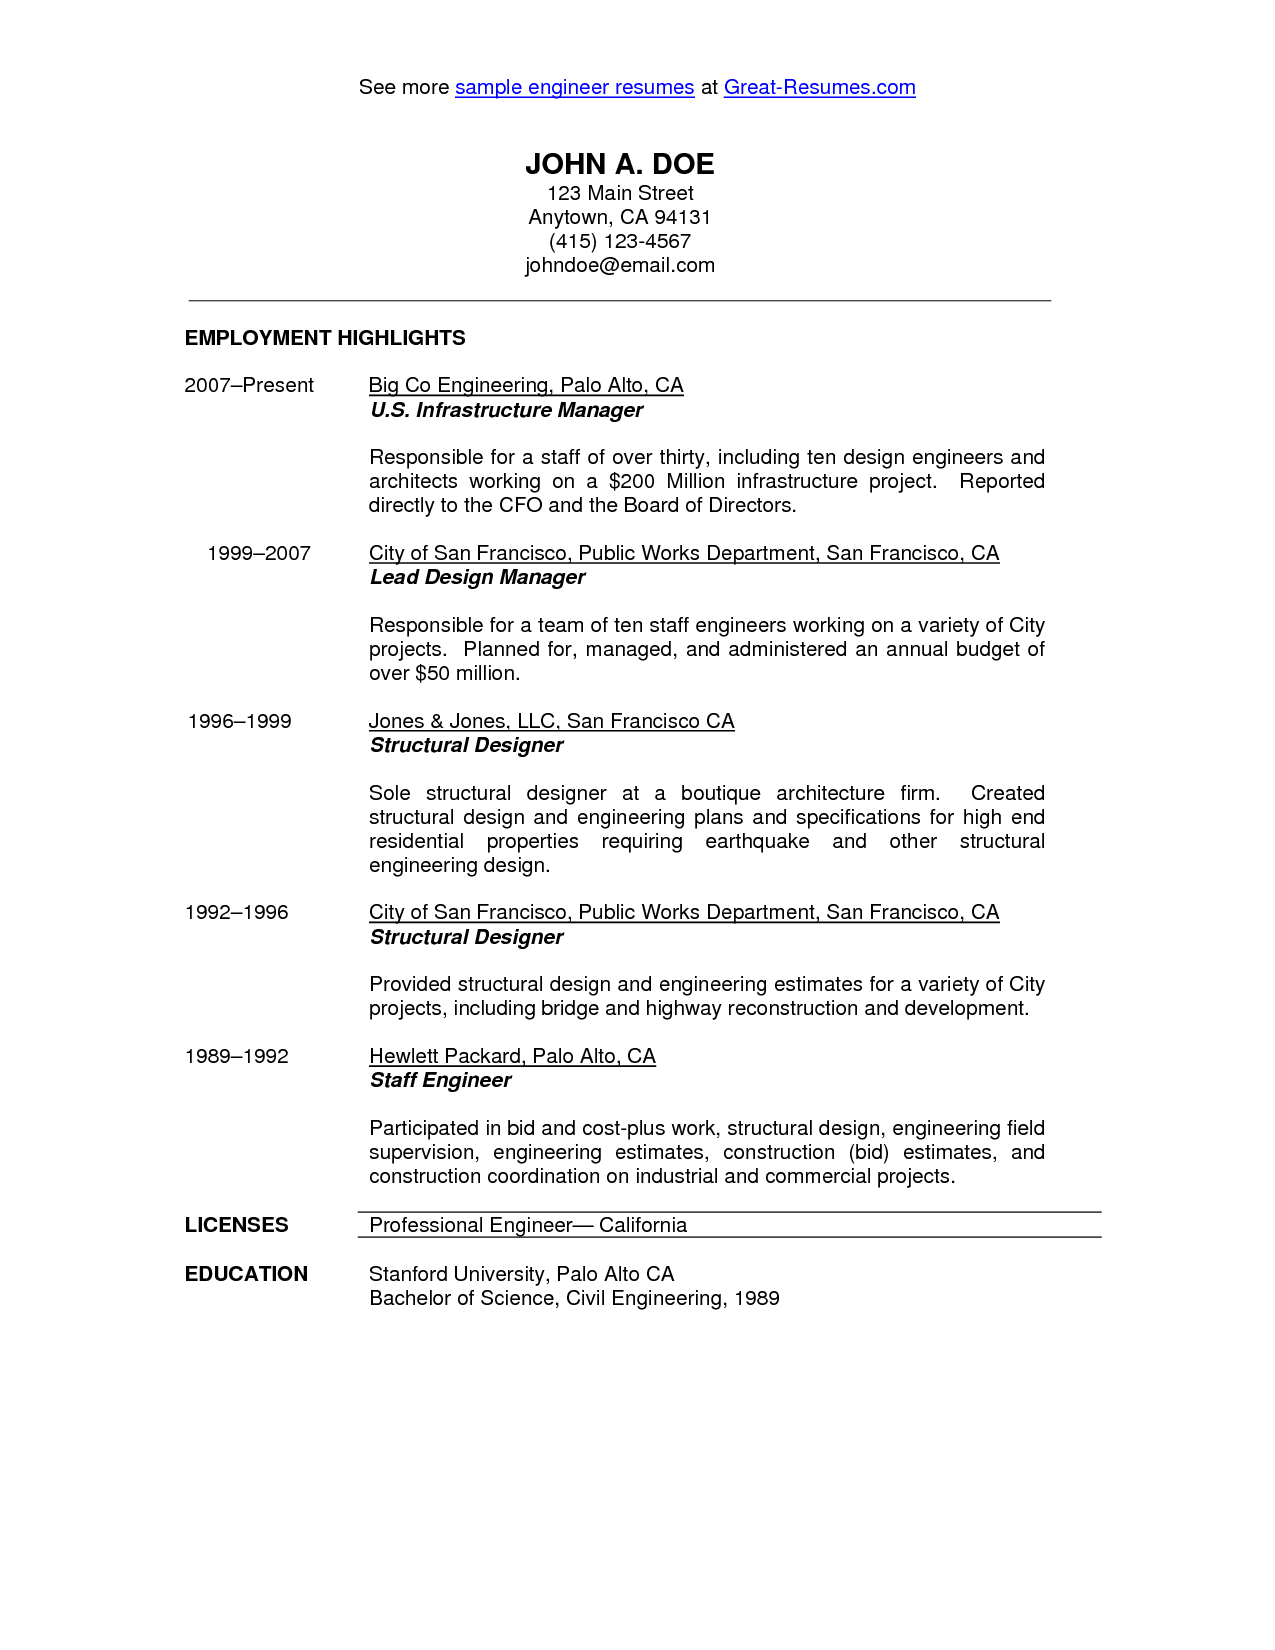 How To Write An Objective For A Resume Civil Engineer Resume Sample  Httpwwwresumecareercivil